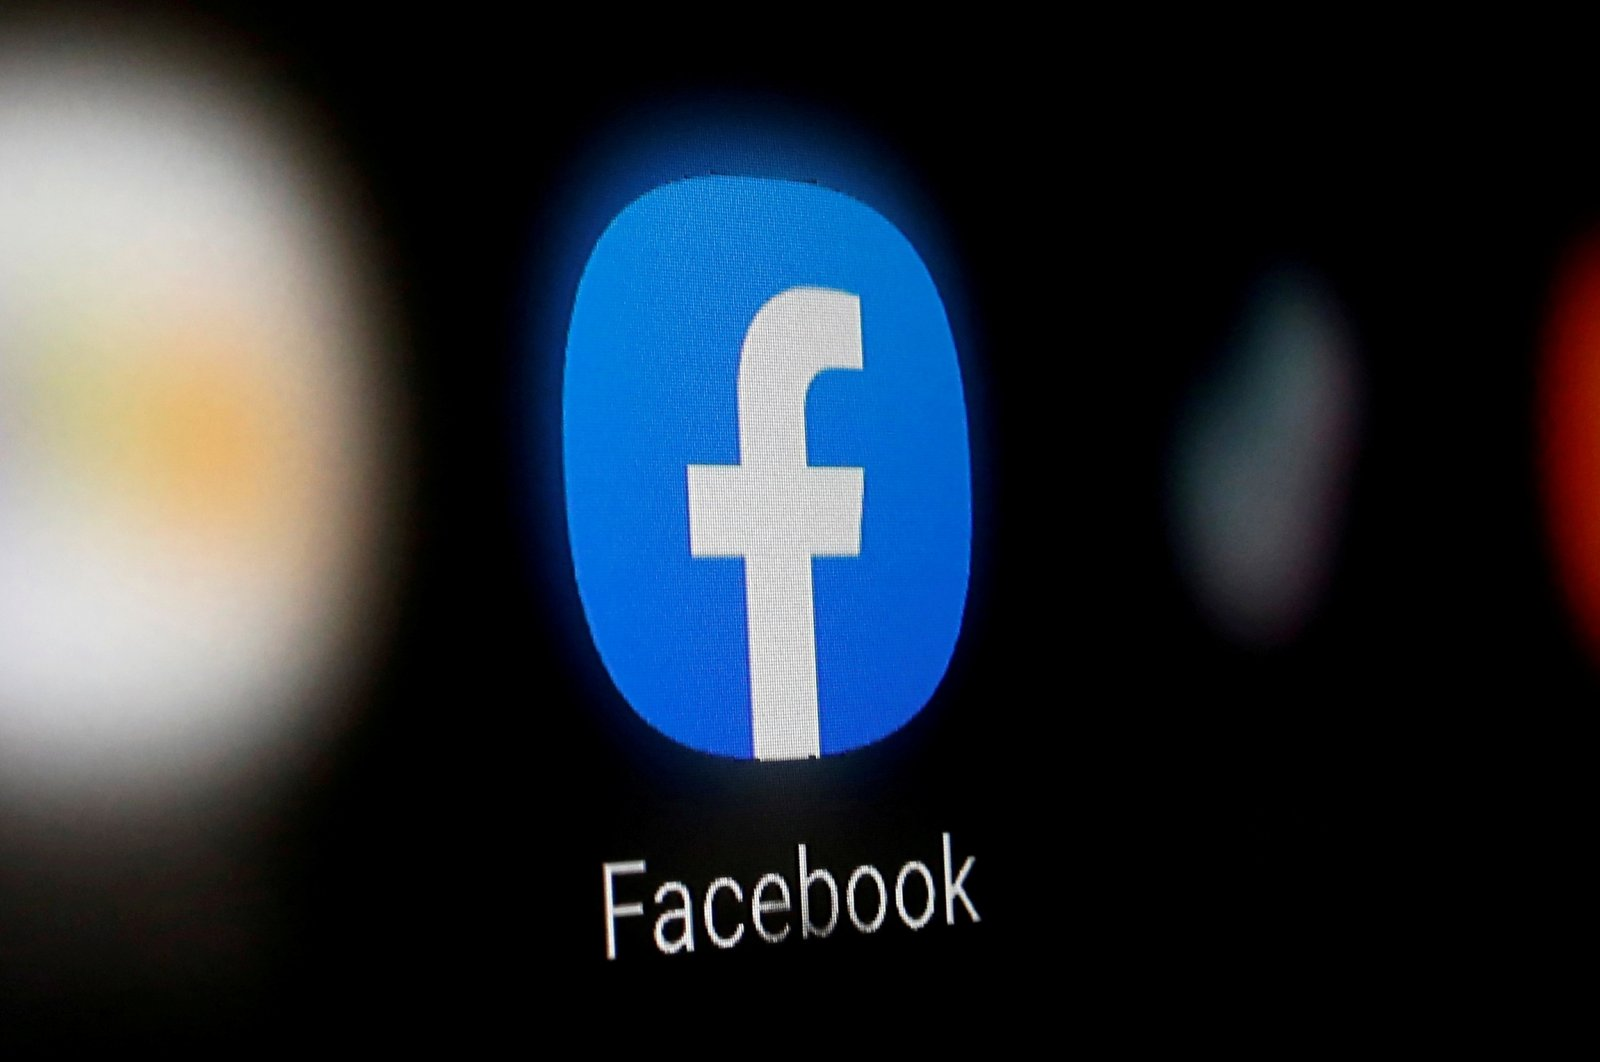 A Facebook logo is displayed on a smartphone in this illustration taken Jan. 6, 2020. (Reuters Photo)